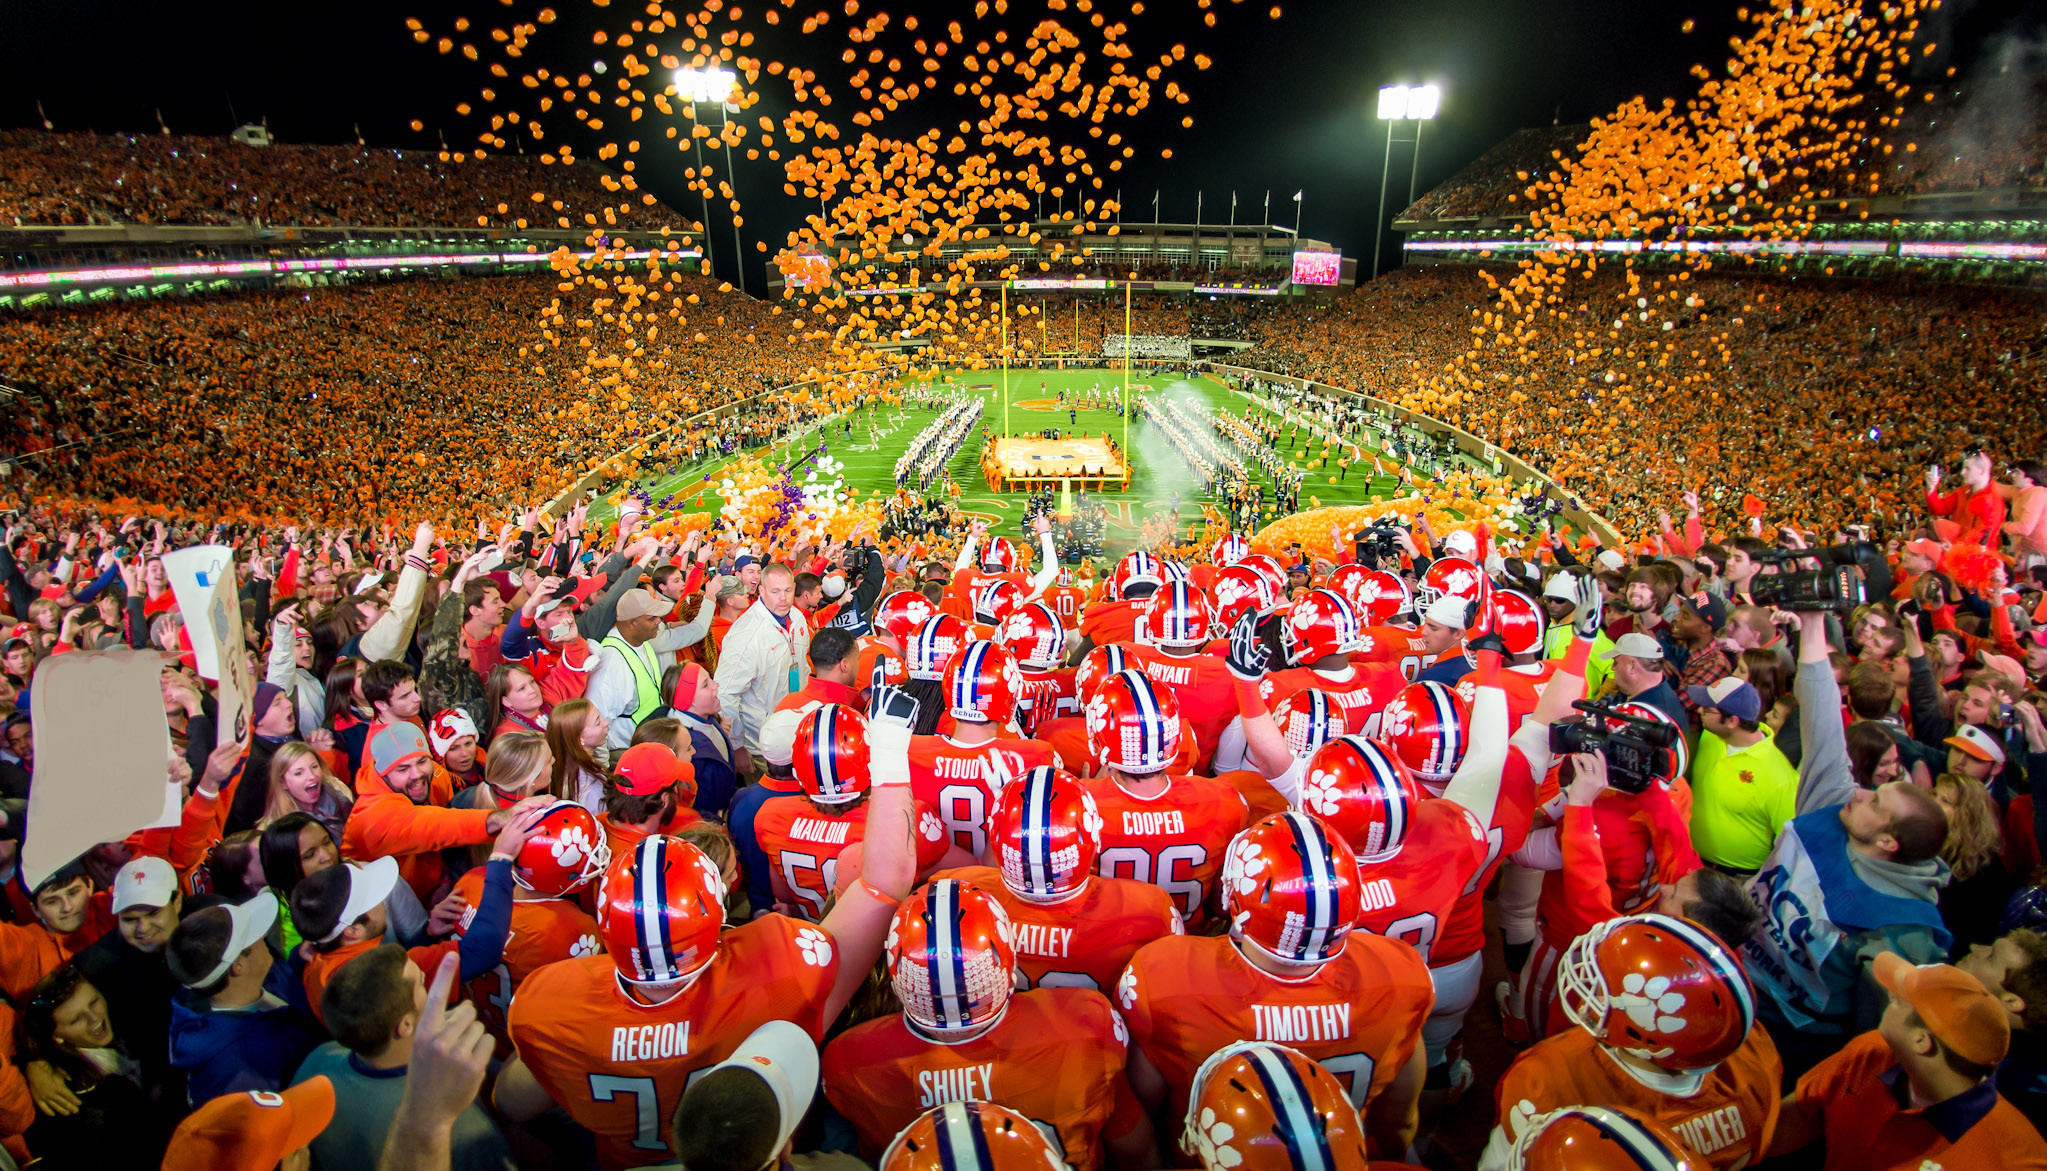 Notre Dame Coming to Clemson in 2015